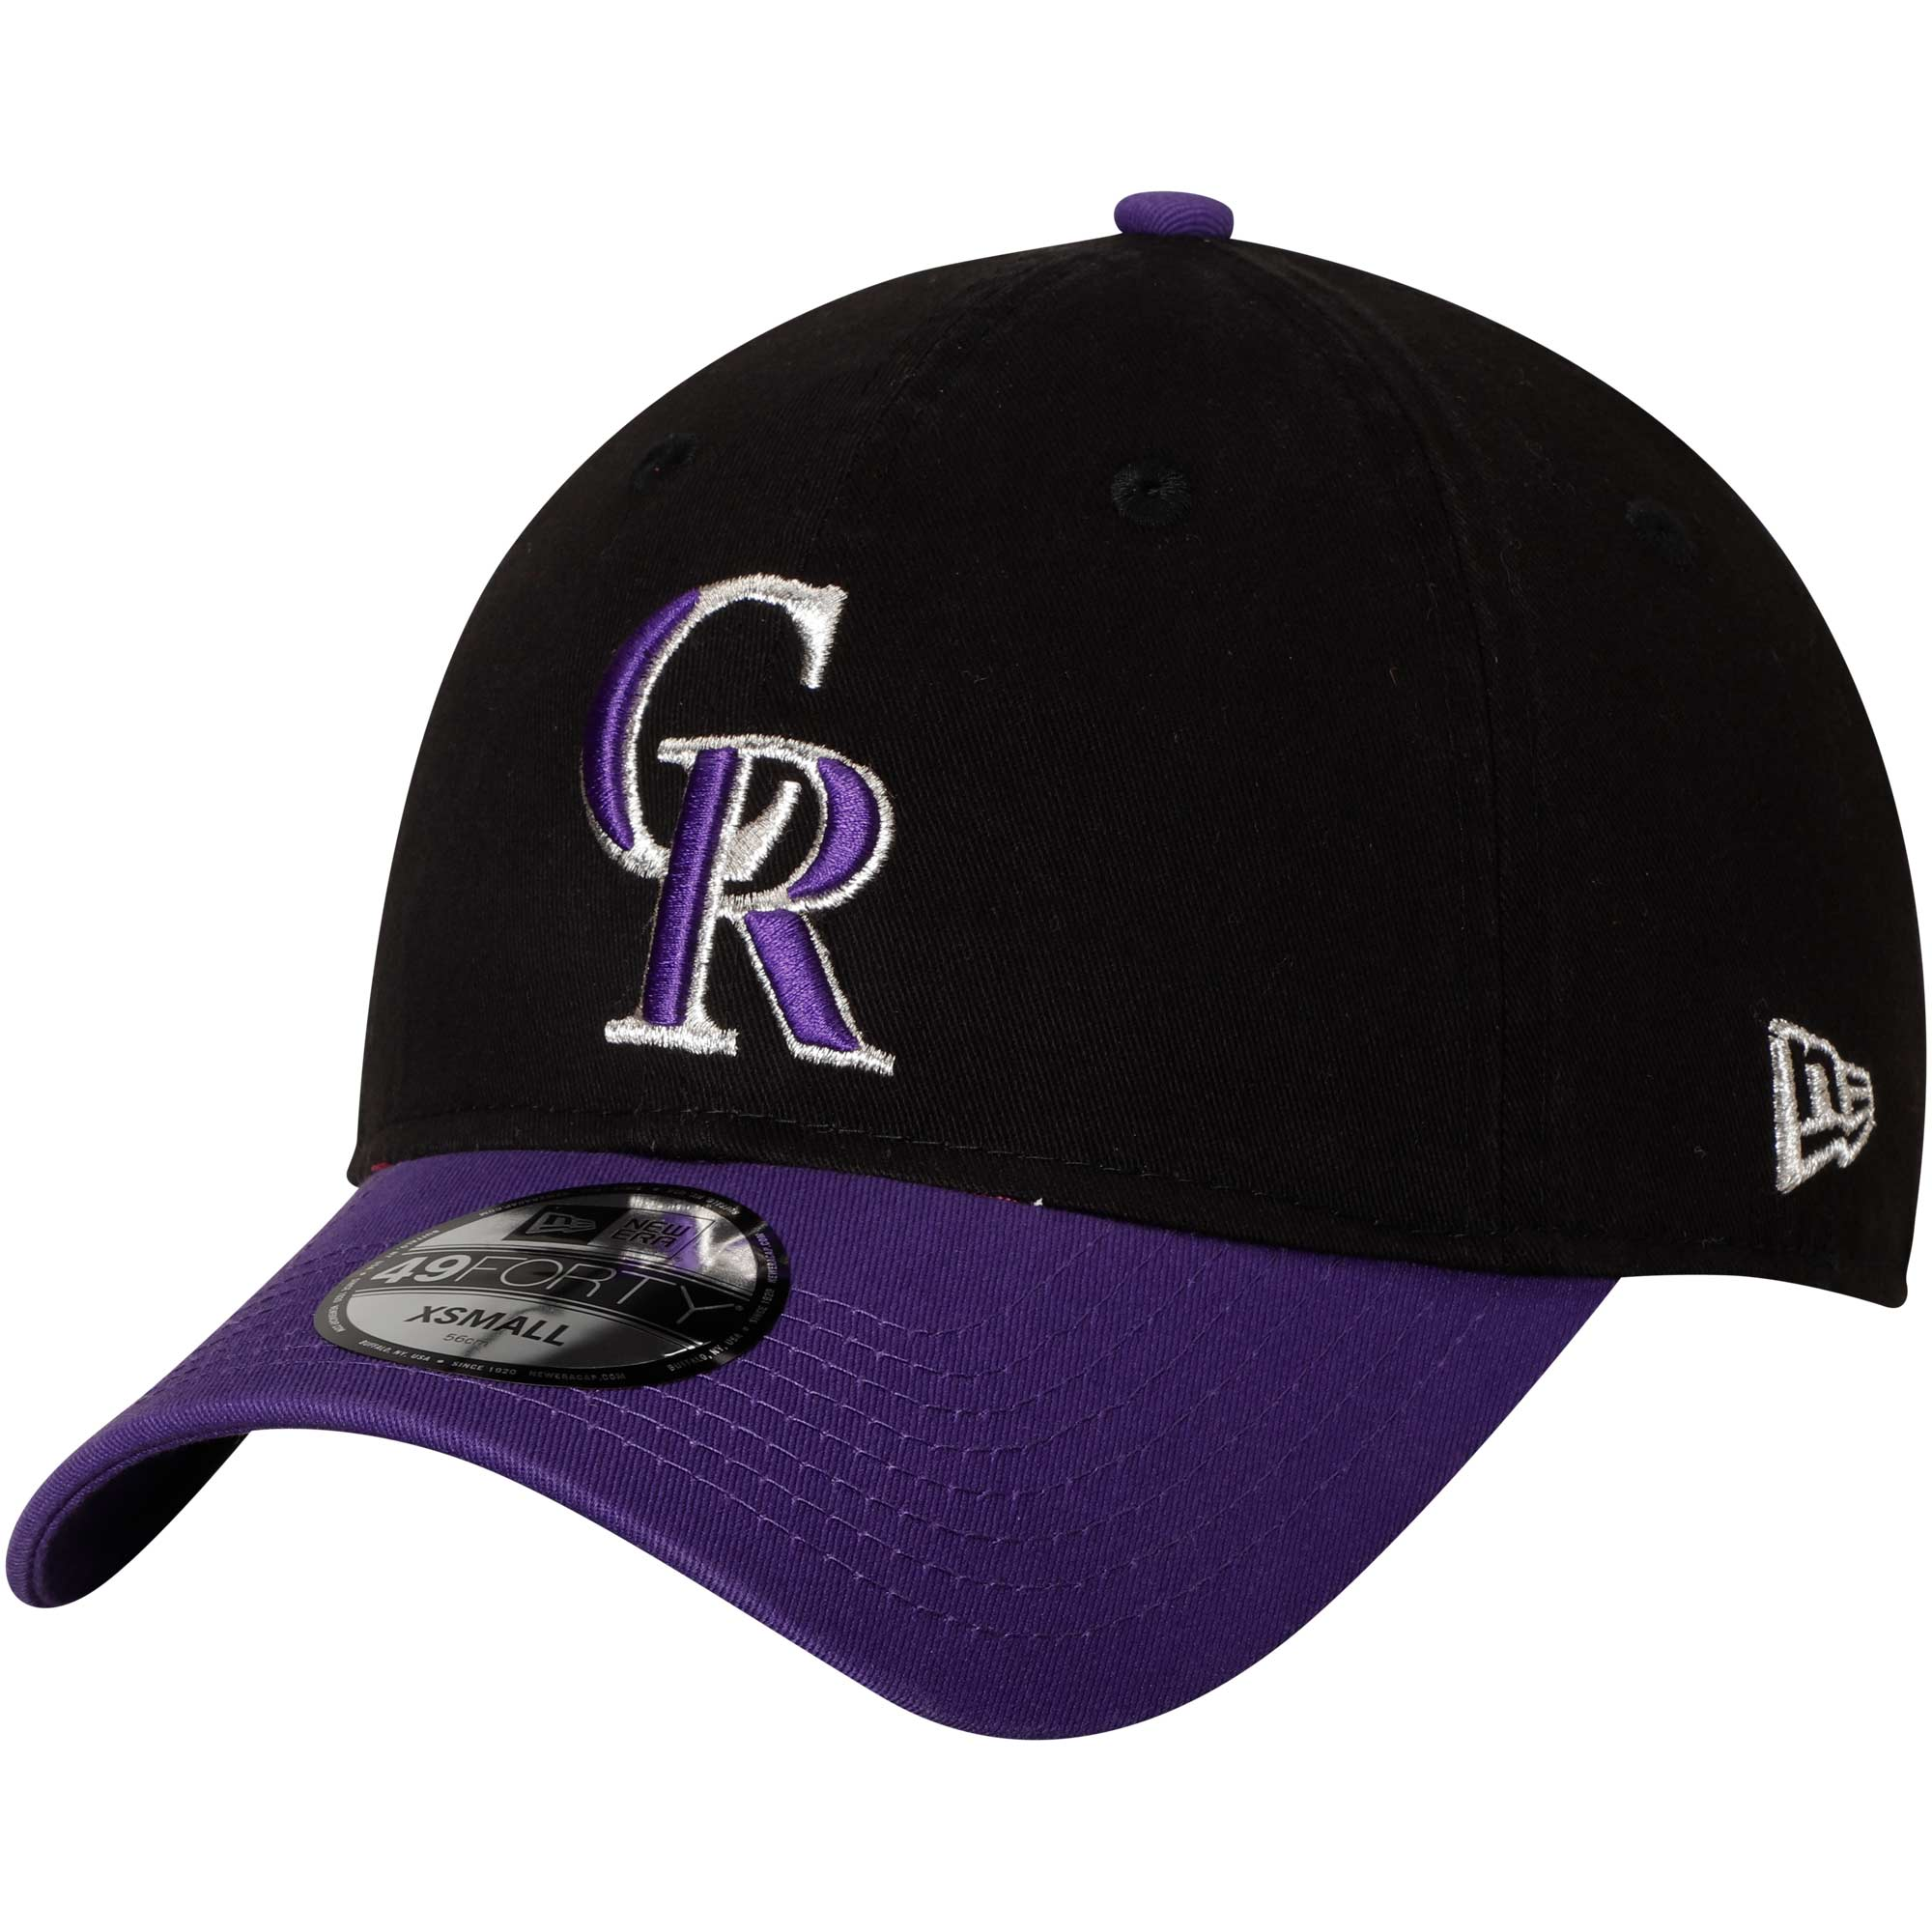 Colorado Rockies New Era Core Fit Replica 49FORTY Fitted Hat - Black/Purple